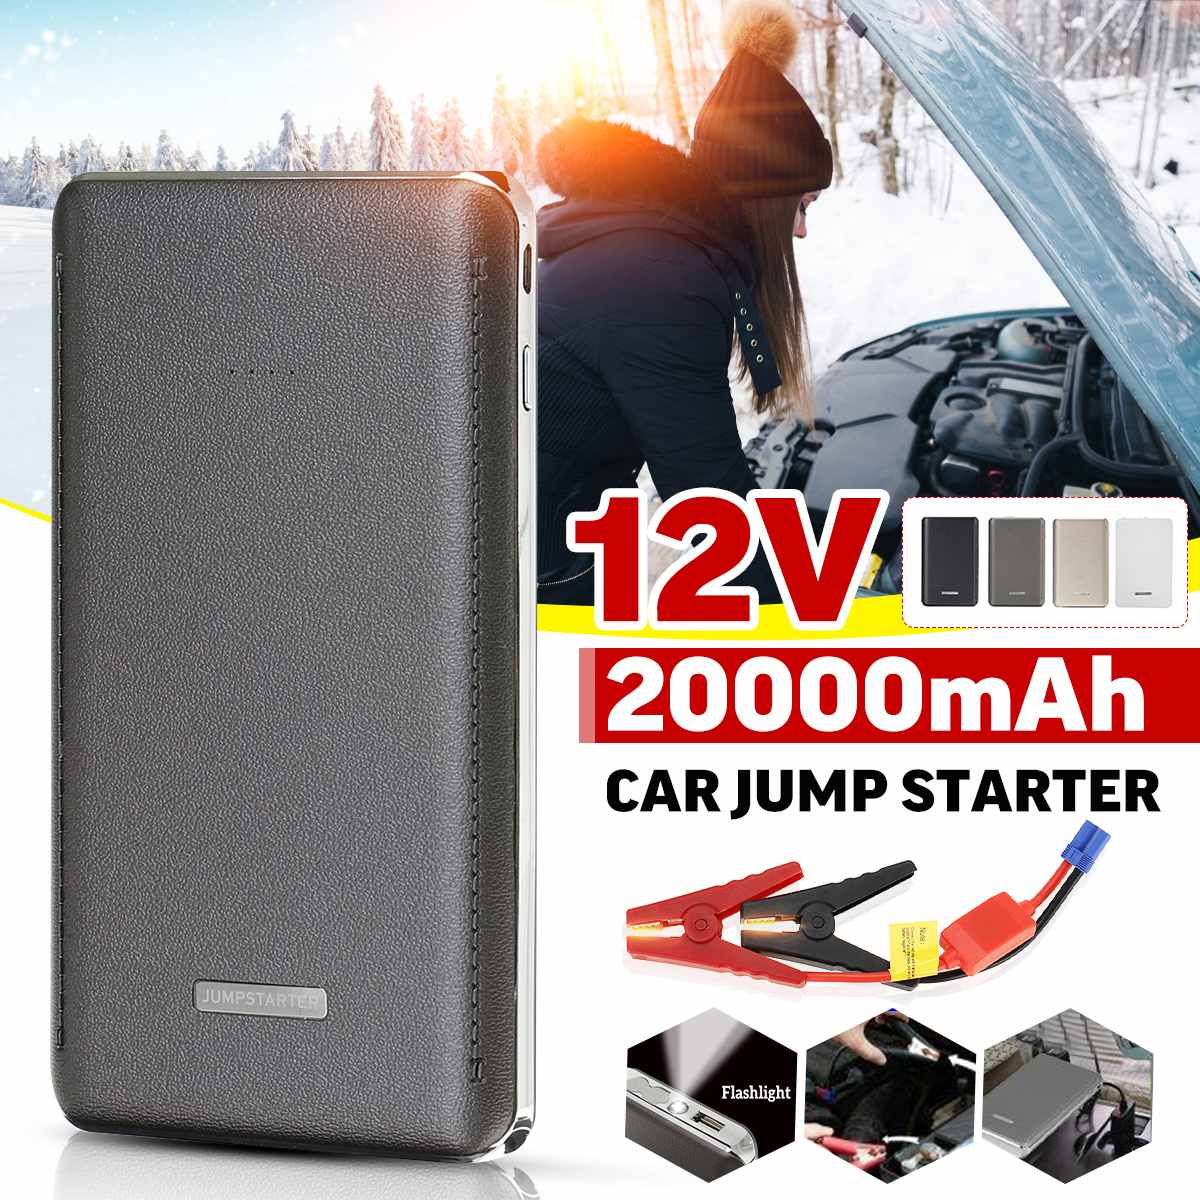 12V 20000mAh 2A Car Jump Starter Automobile Supply Emergency Battery Flashlight Charger Battery Smartphone Power Bank